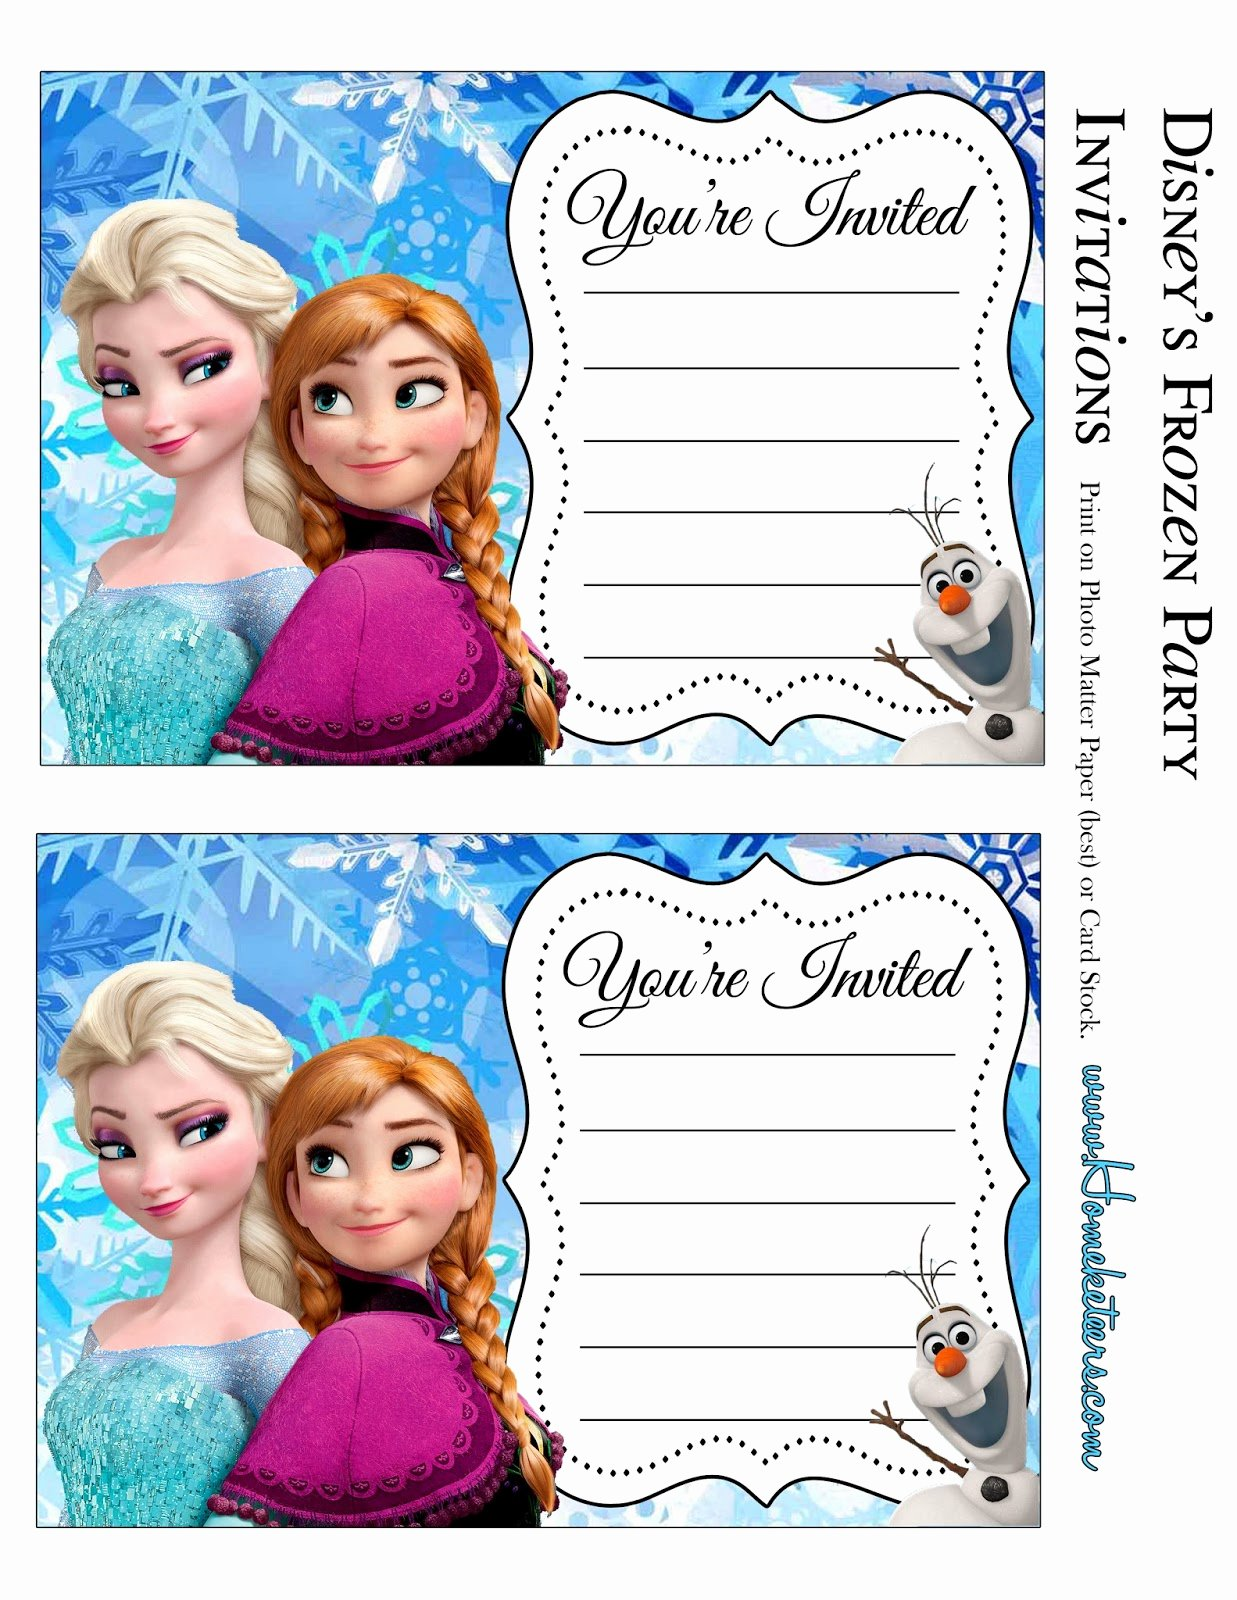 Frozen Invite Template Free Awesome Frozen Invitaciones Para Imprimir Gratis